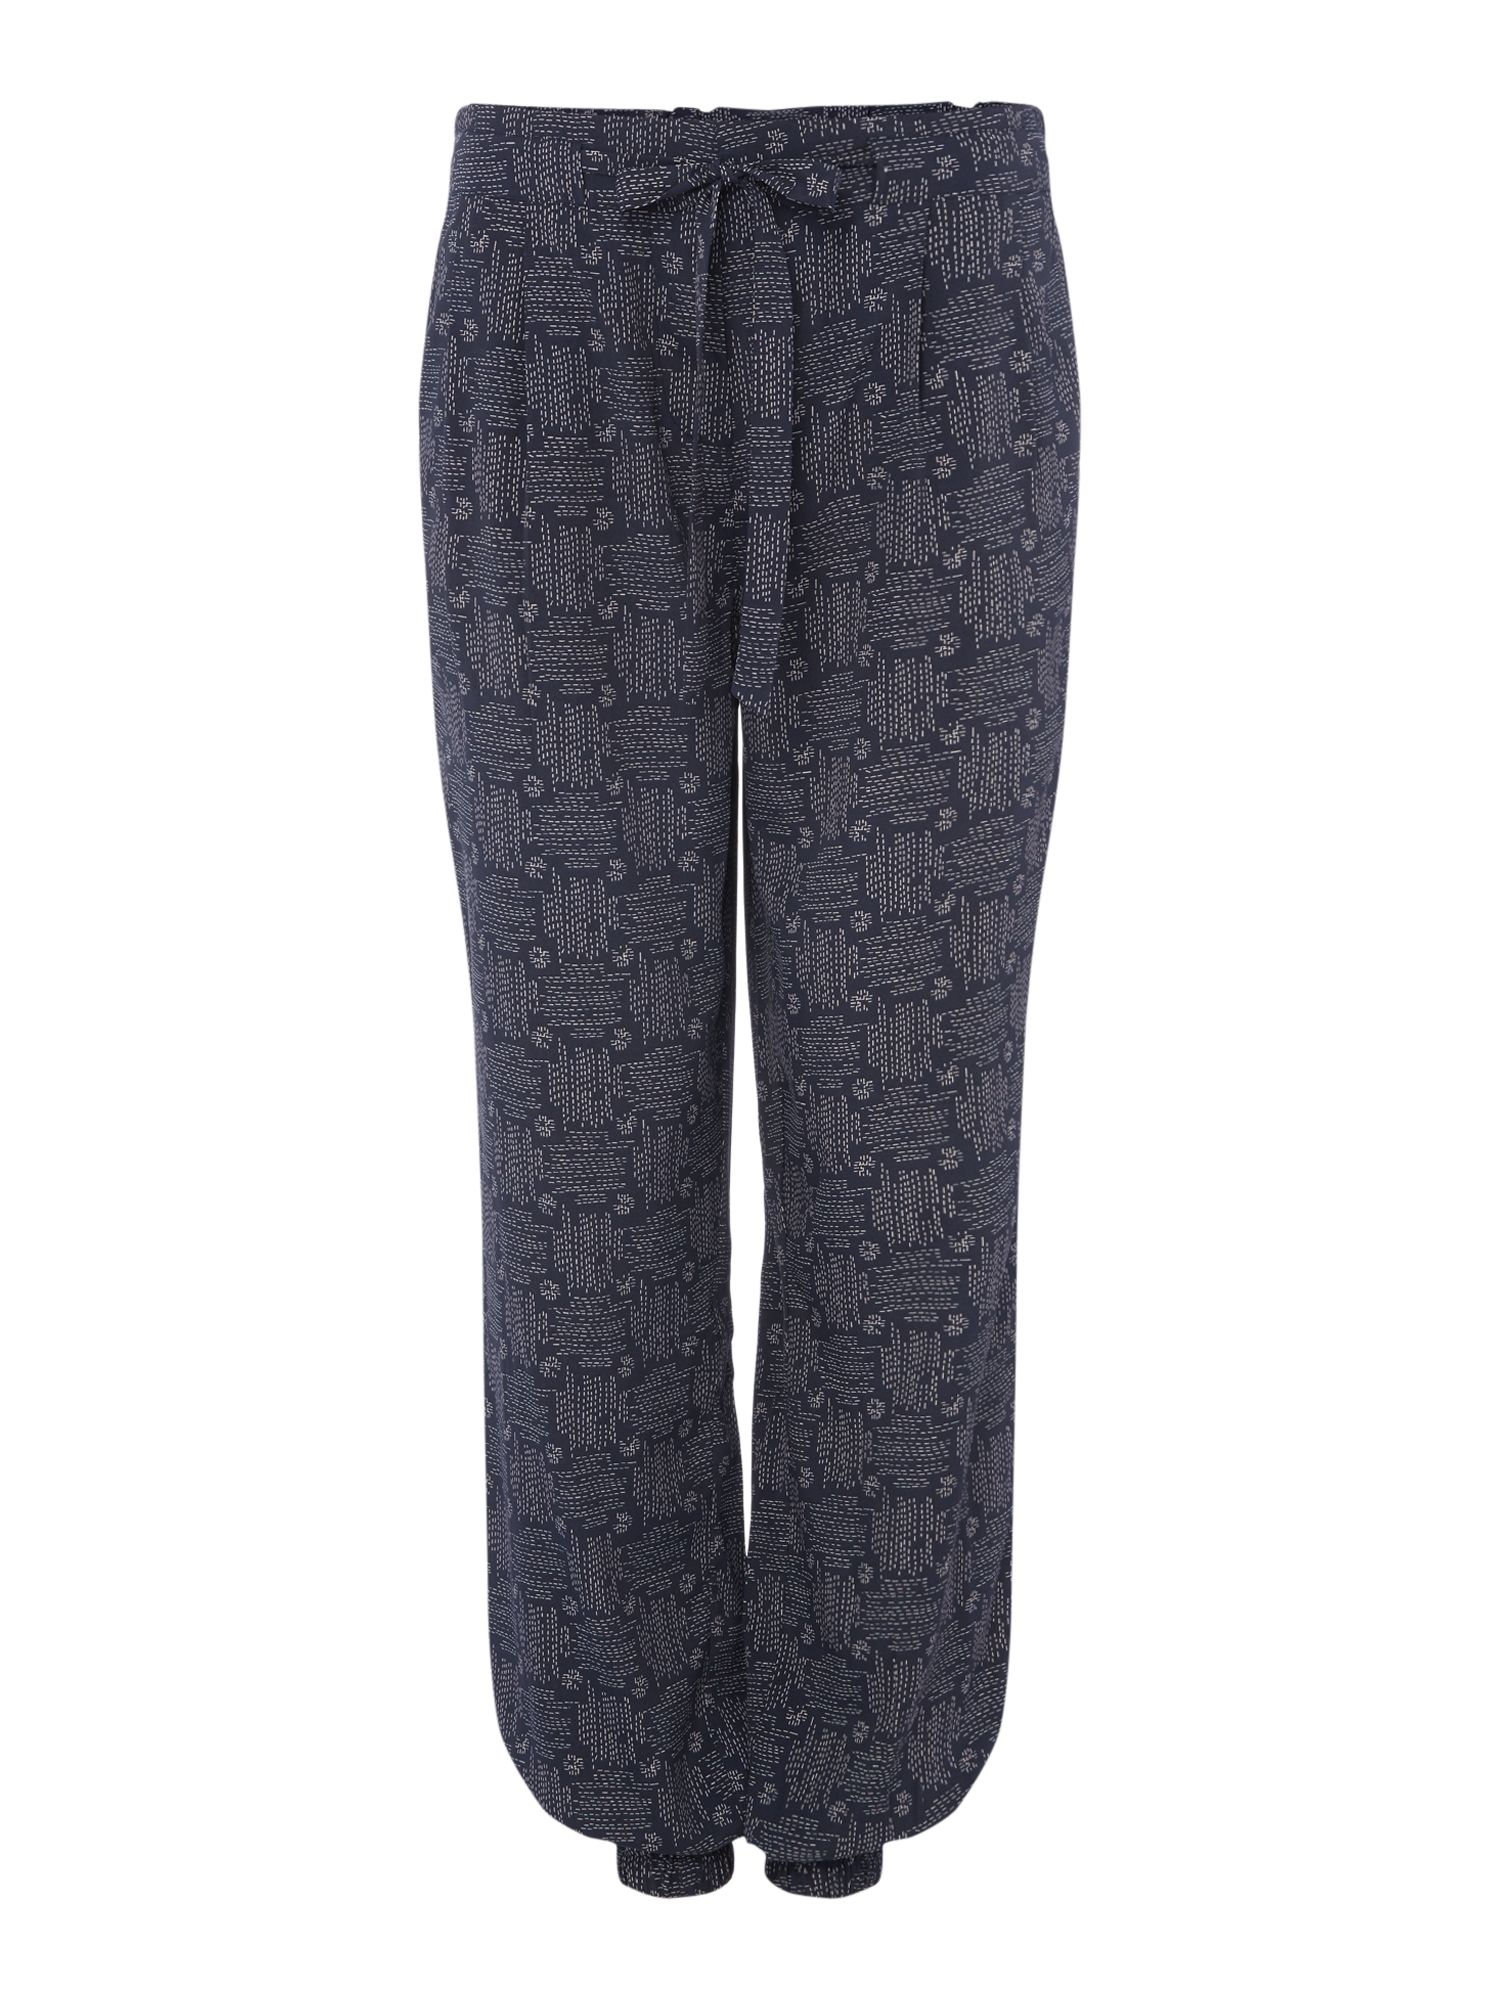 Maison De Nimes Cross Stitch Cargo Trouser, Blue